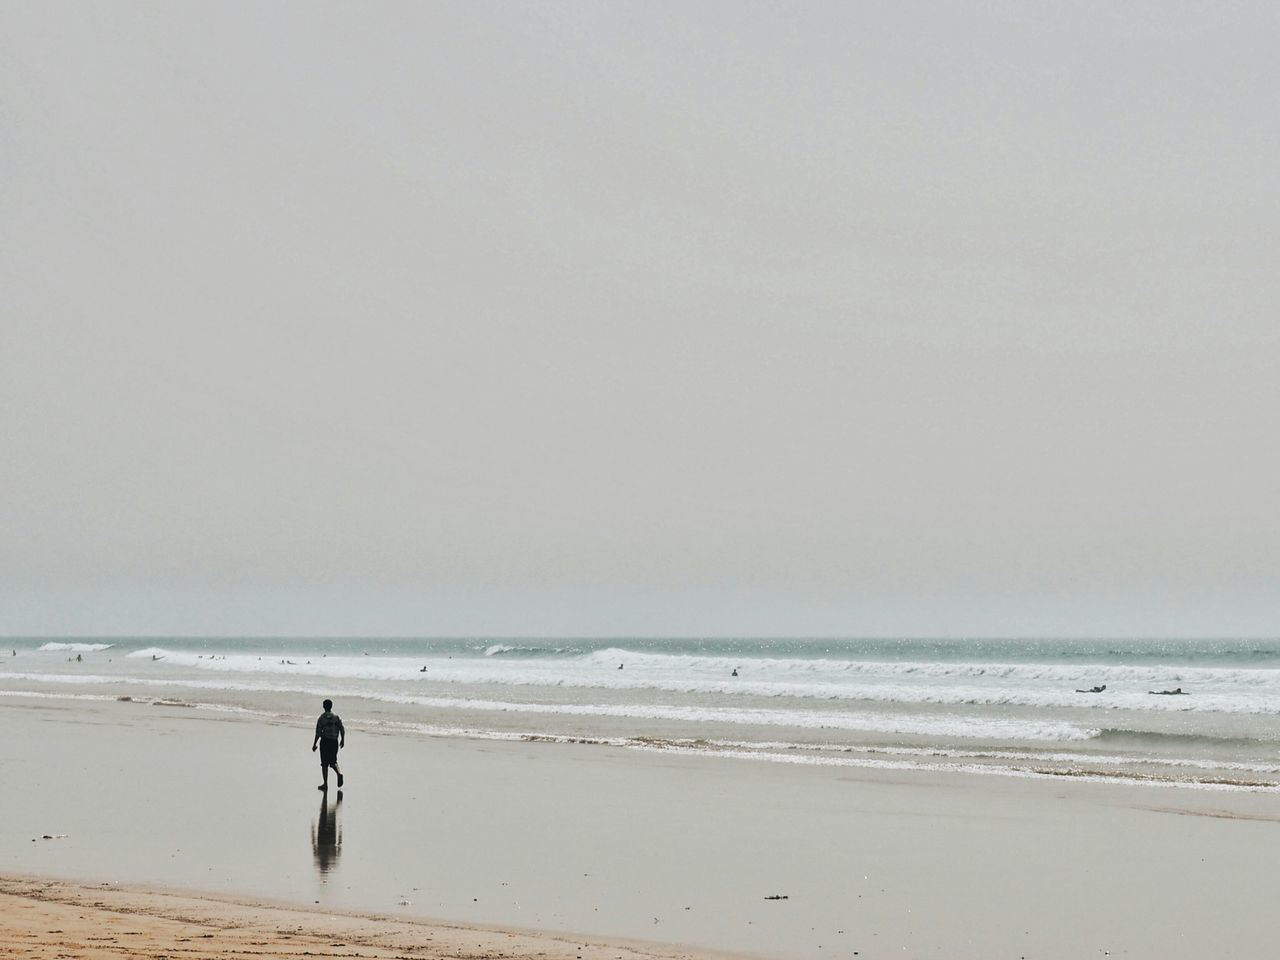 Beach Sea Horizon Over Water Sand Only Men Reflection_collection Reflection One Person Water Outdoors Adult People Scenics Nature Adults Only Day Vacations Wave One Man Only Beauty In Nature Nature Tranquility Morocco 🇲🇦 Morocco Silhouette